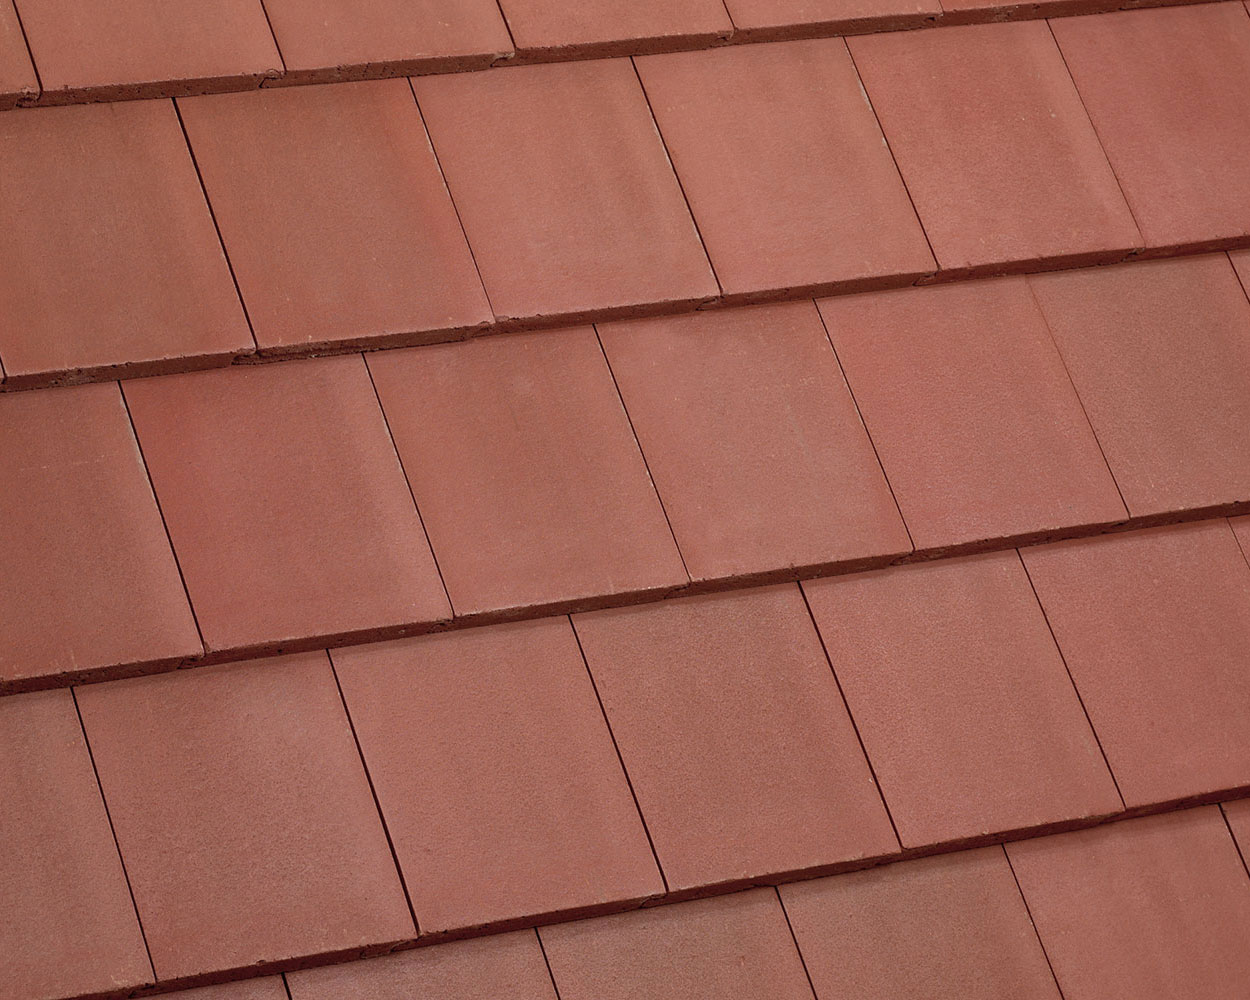 Kona red range tile roof color swatch